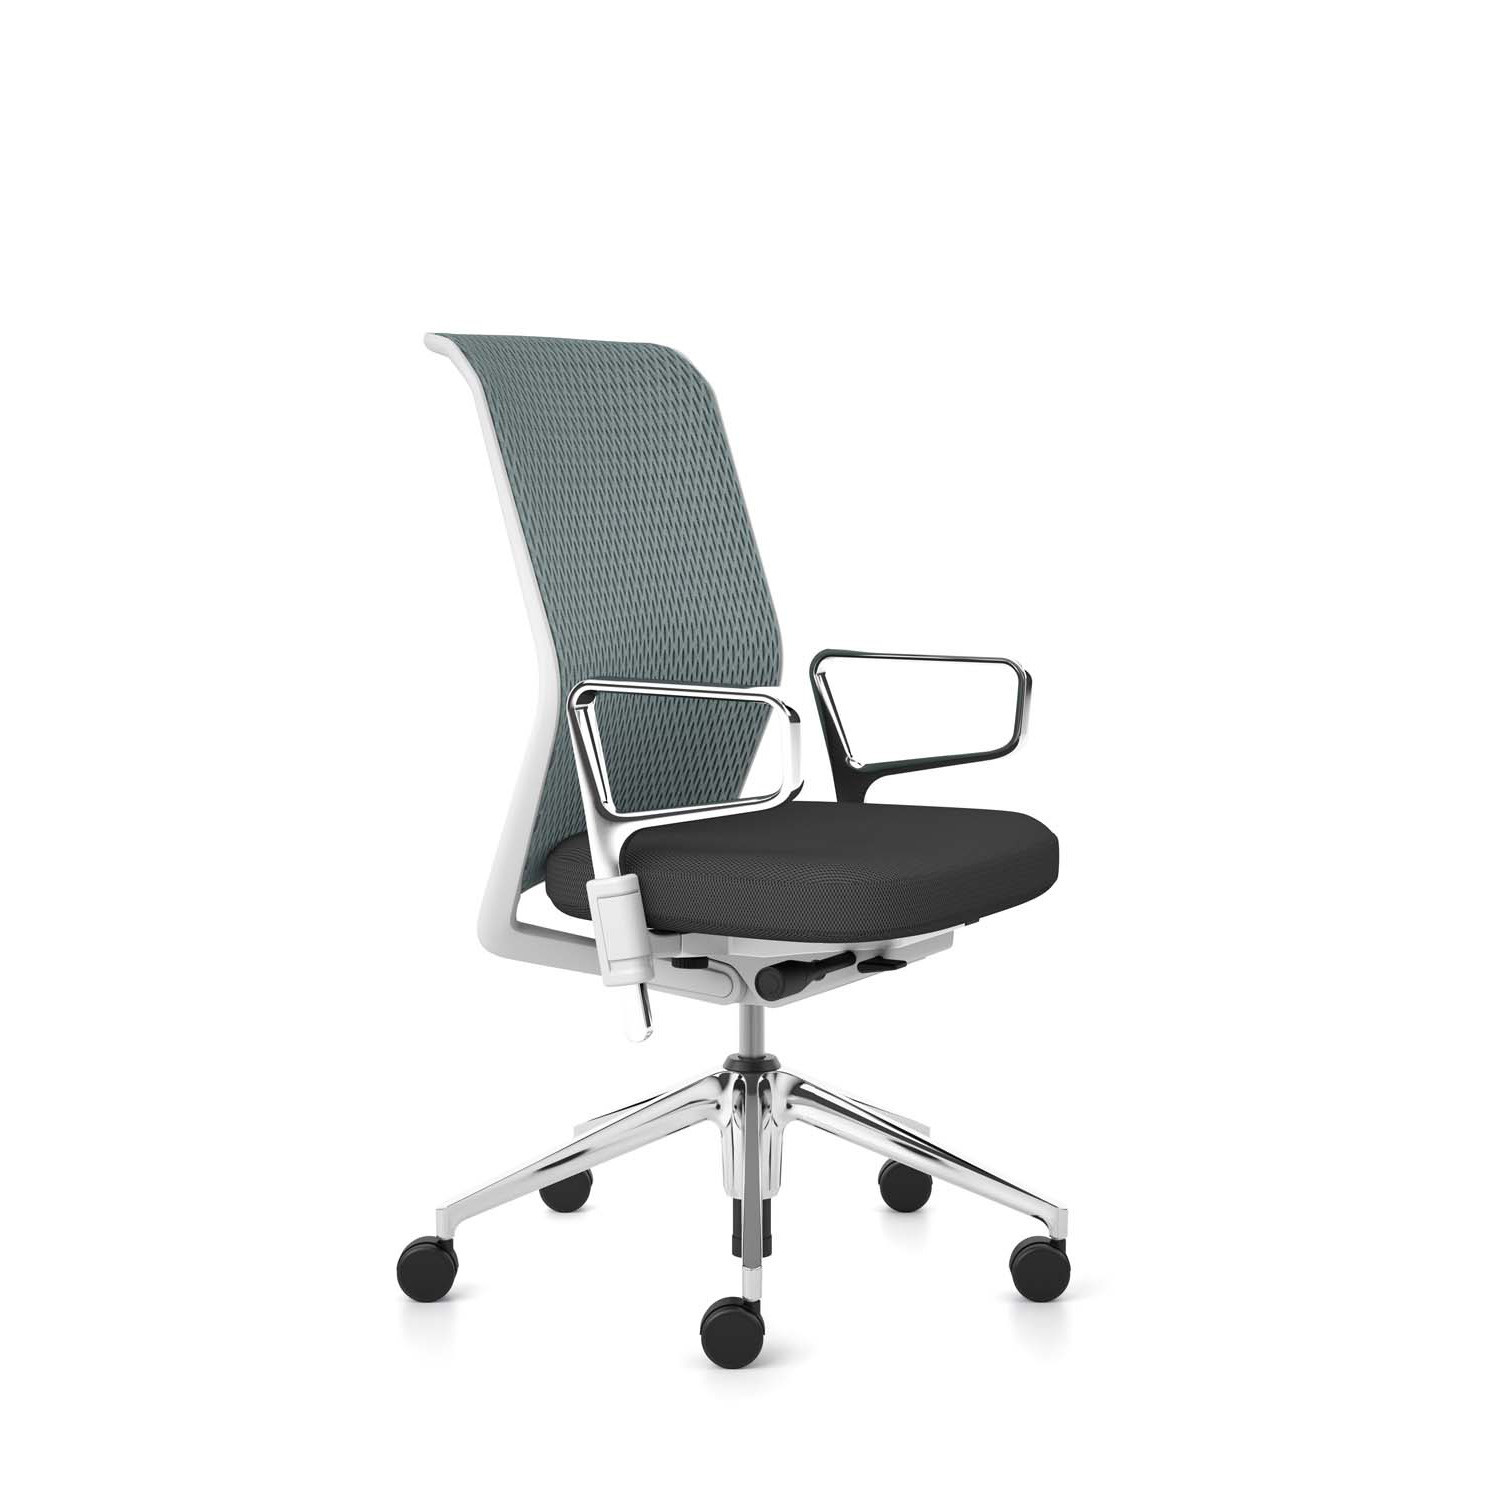 id mesh chair vitra id office task chairs apres furniture. Black Bedroom Furniture Sets. Home Design Ideas